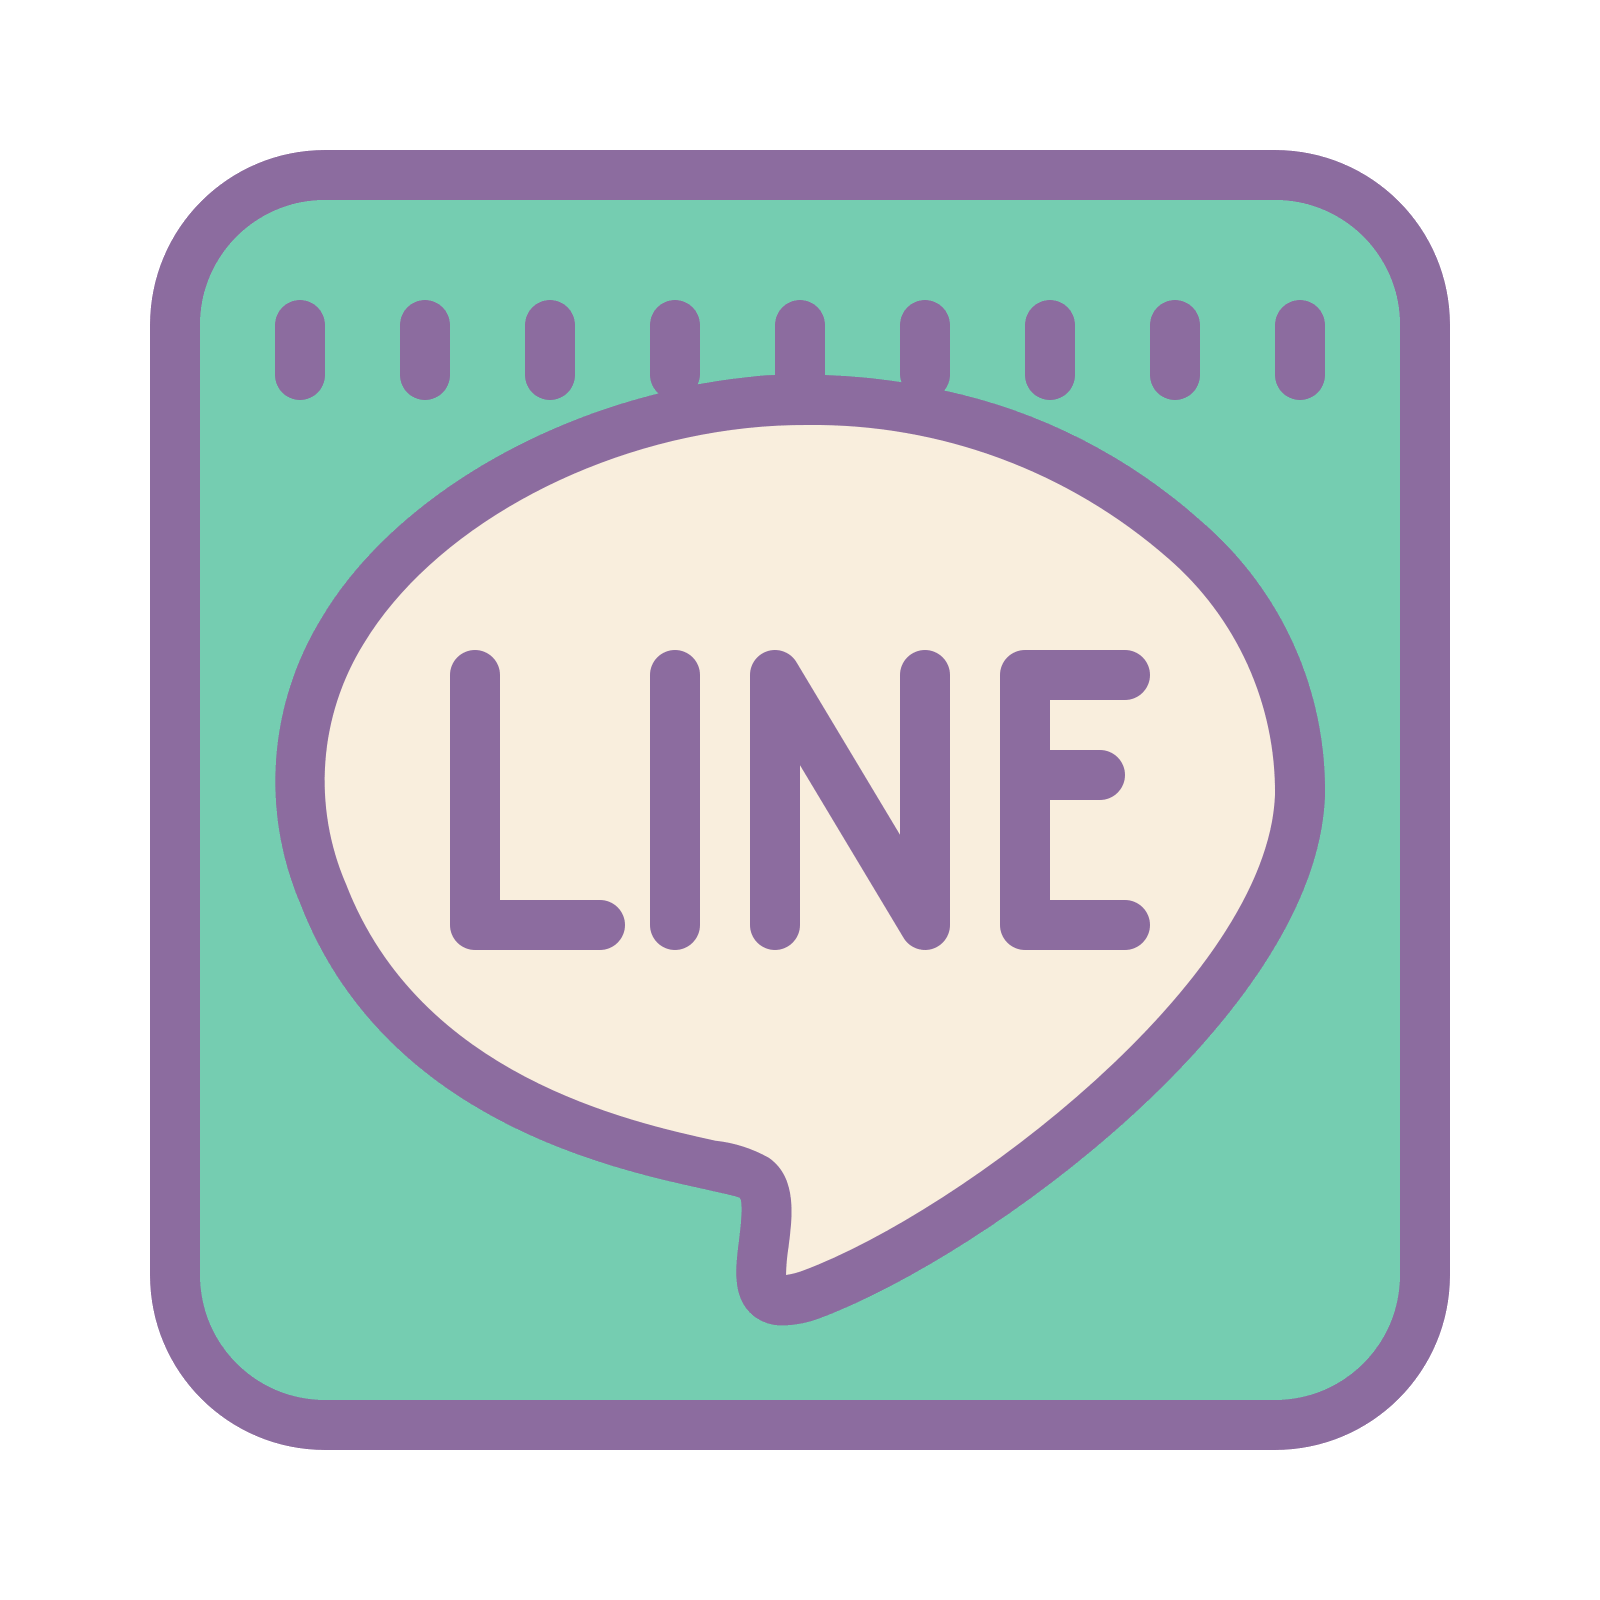 Free download png. Line icon and vector